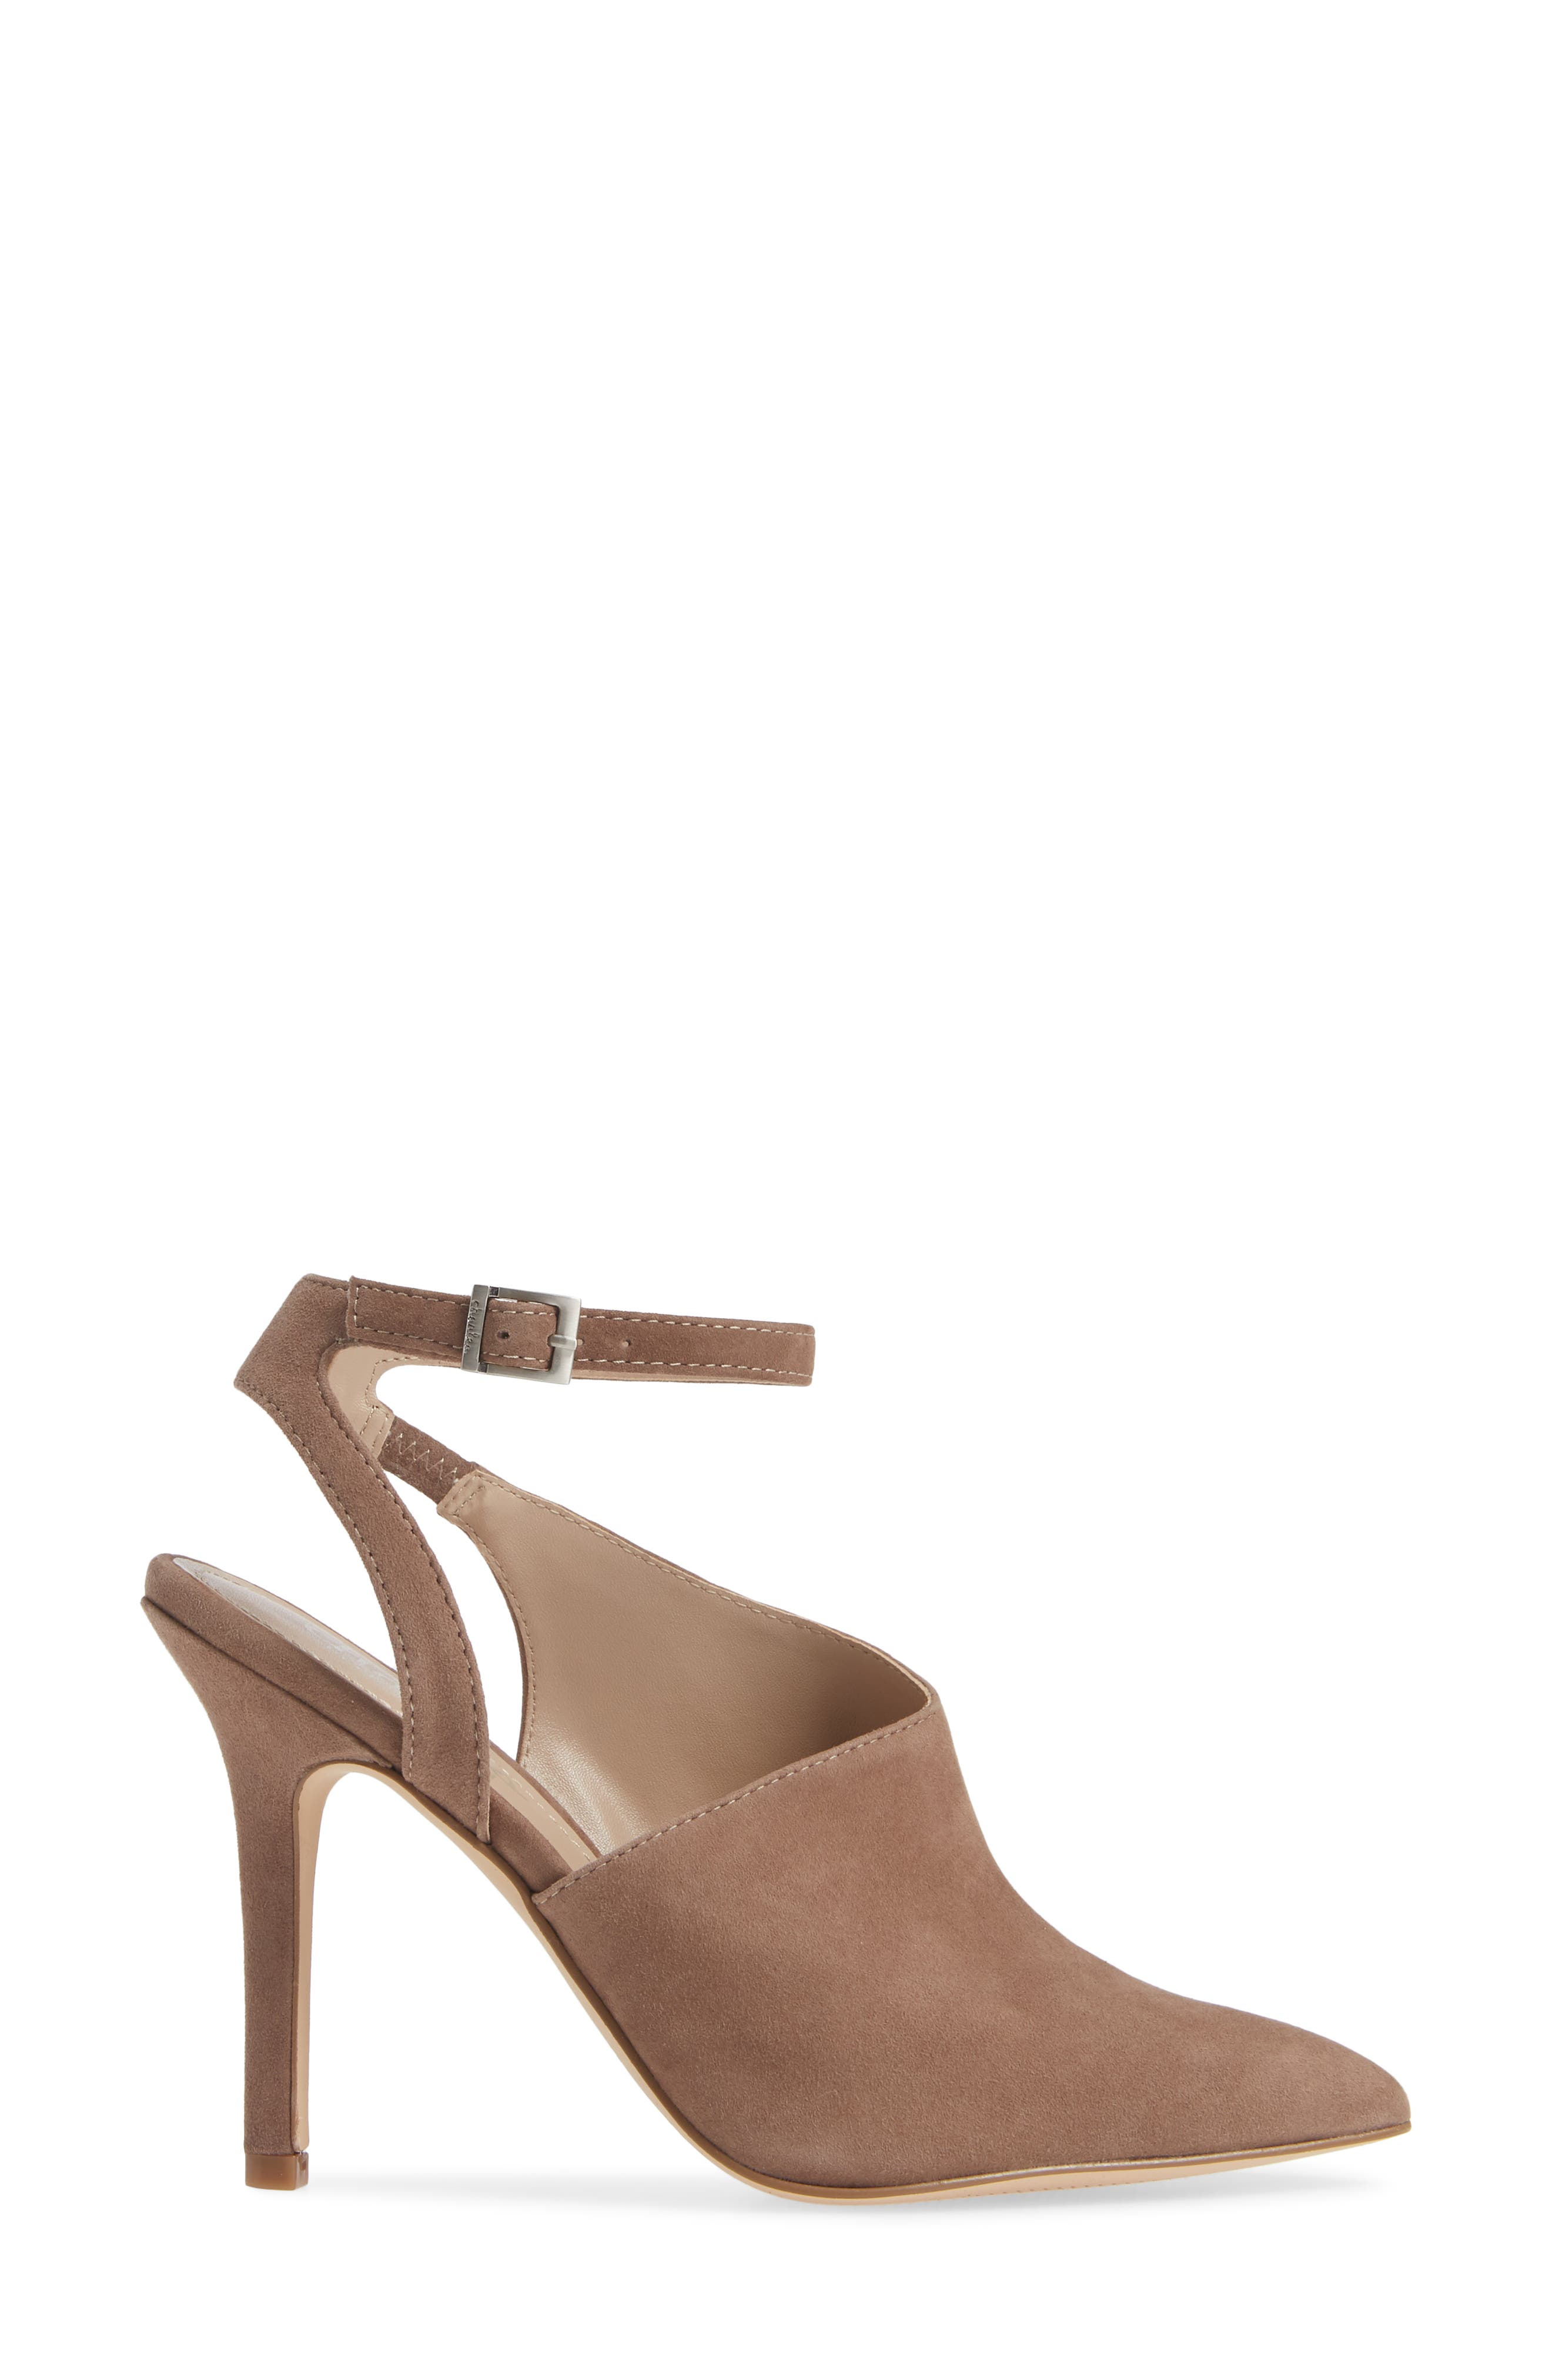 CHARLES BY CHARLES DAVID, Mieko Pump, Alternate thumbnail 3, color, TAUPE SUEDE